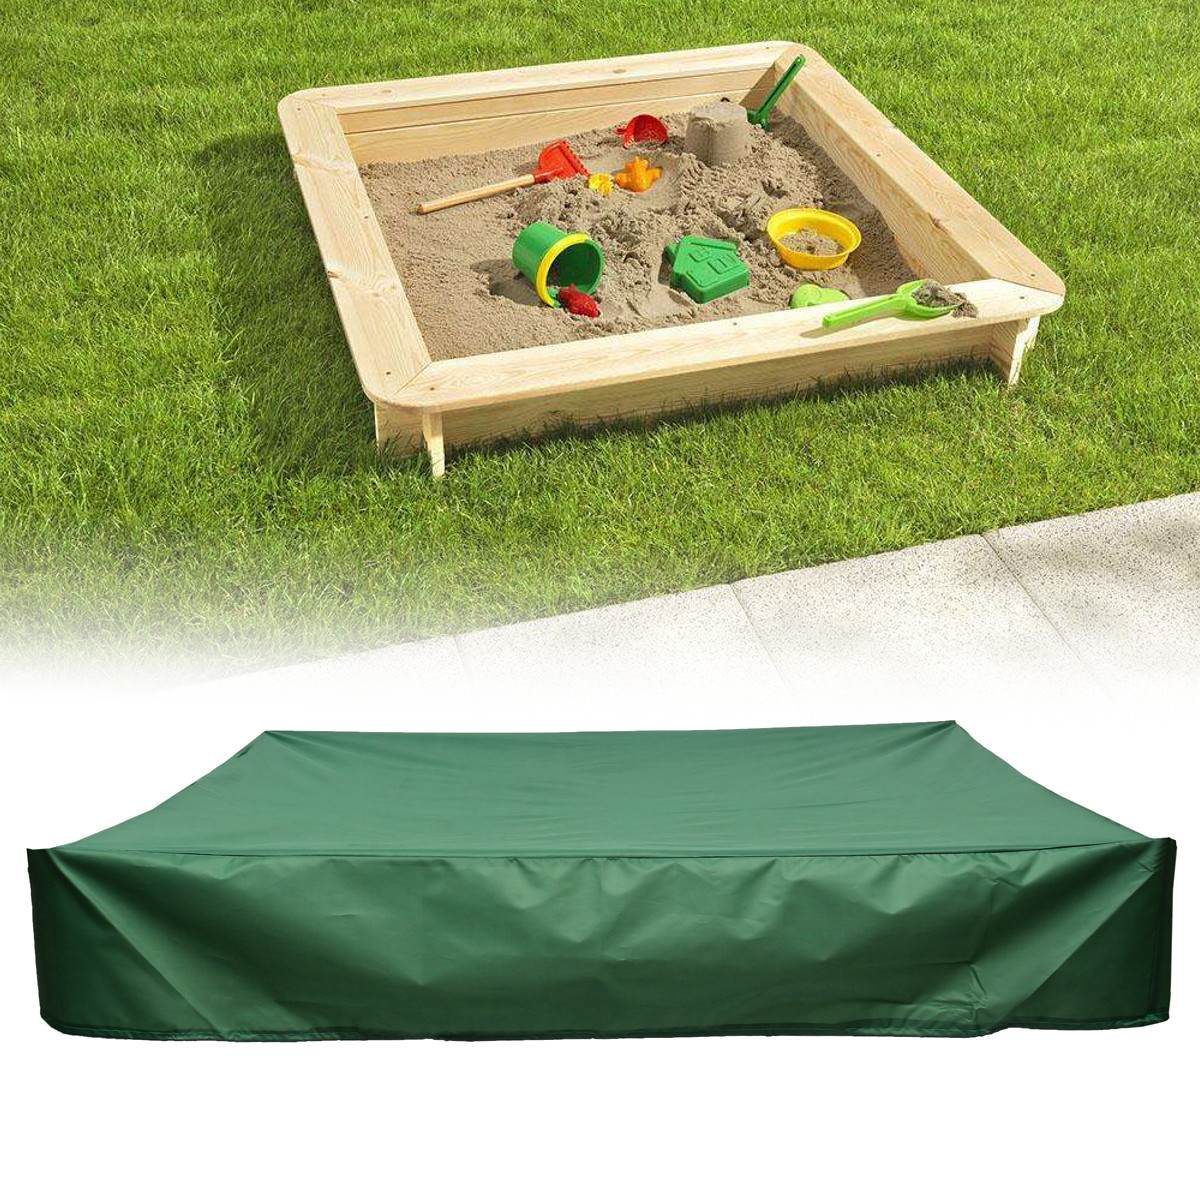 New 120/150/180/200cm Waterproof Oxford Dust Cover Square Drawstring Sandbox Sandpit Dustproof Cover Canopy Shelter Cloth Green|All-Purpose Covers| |  - title=